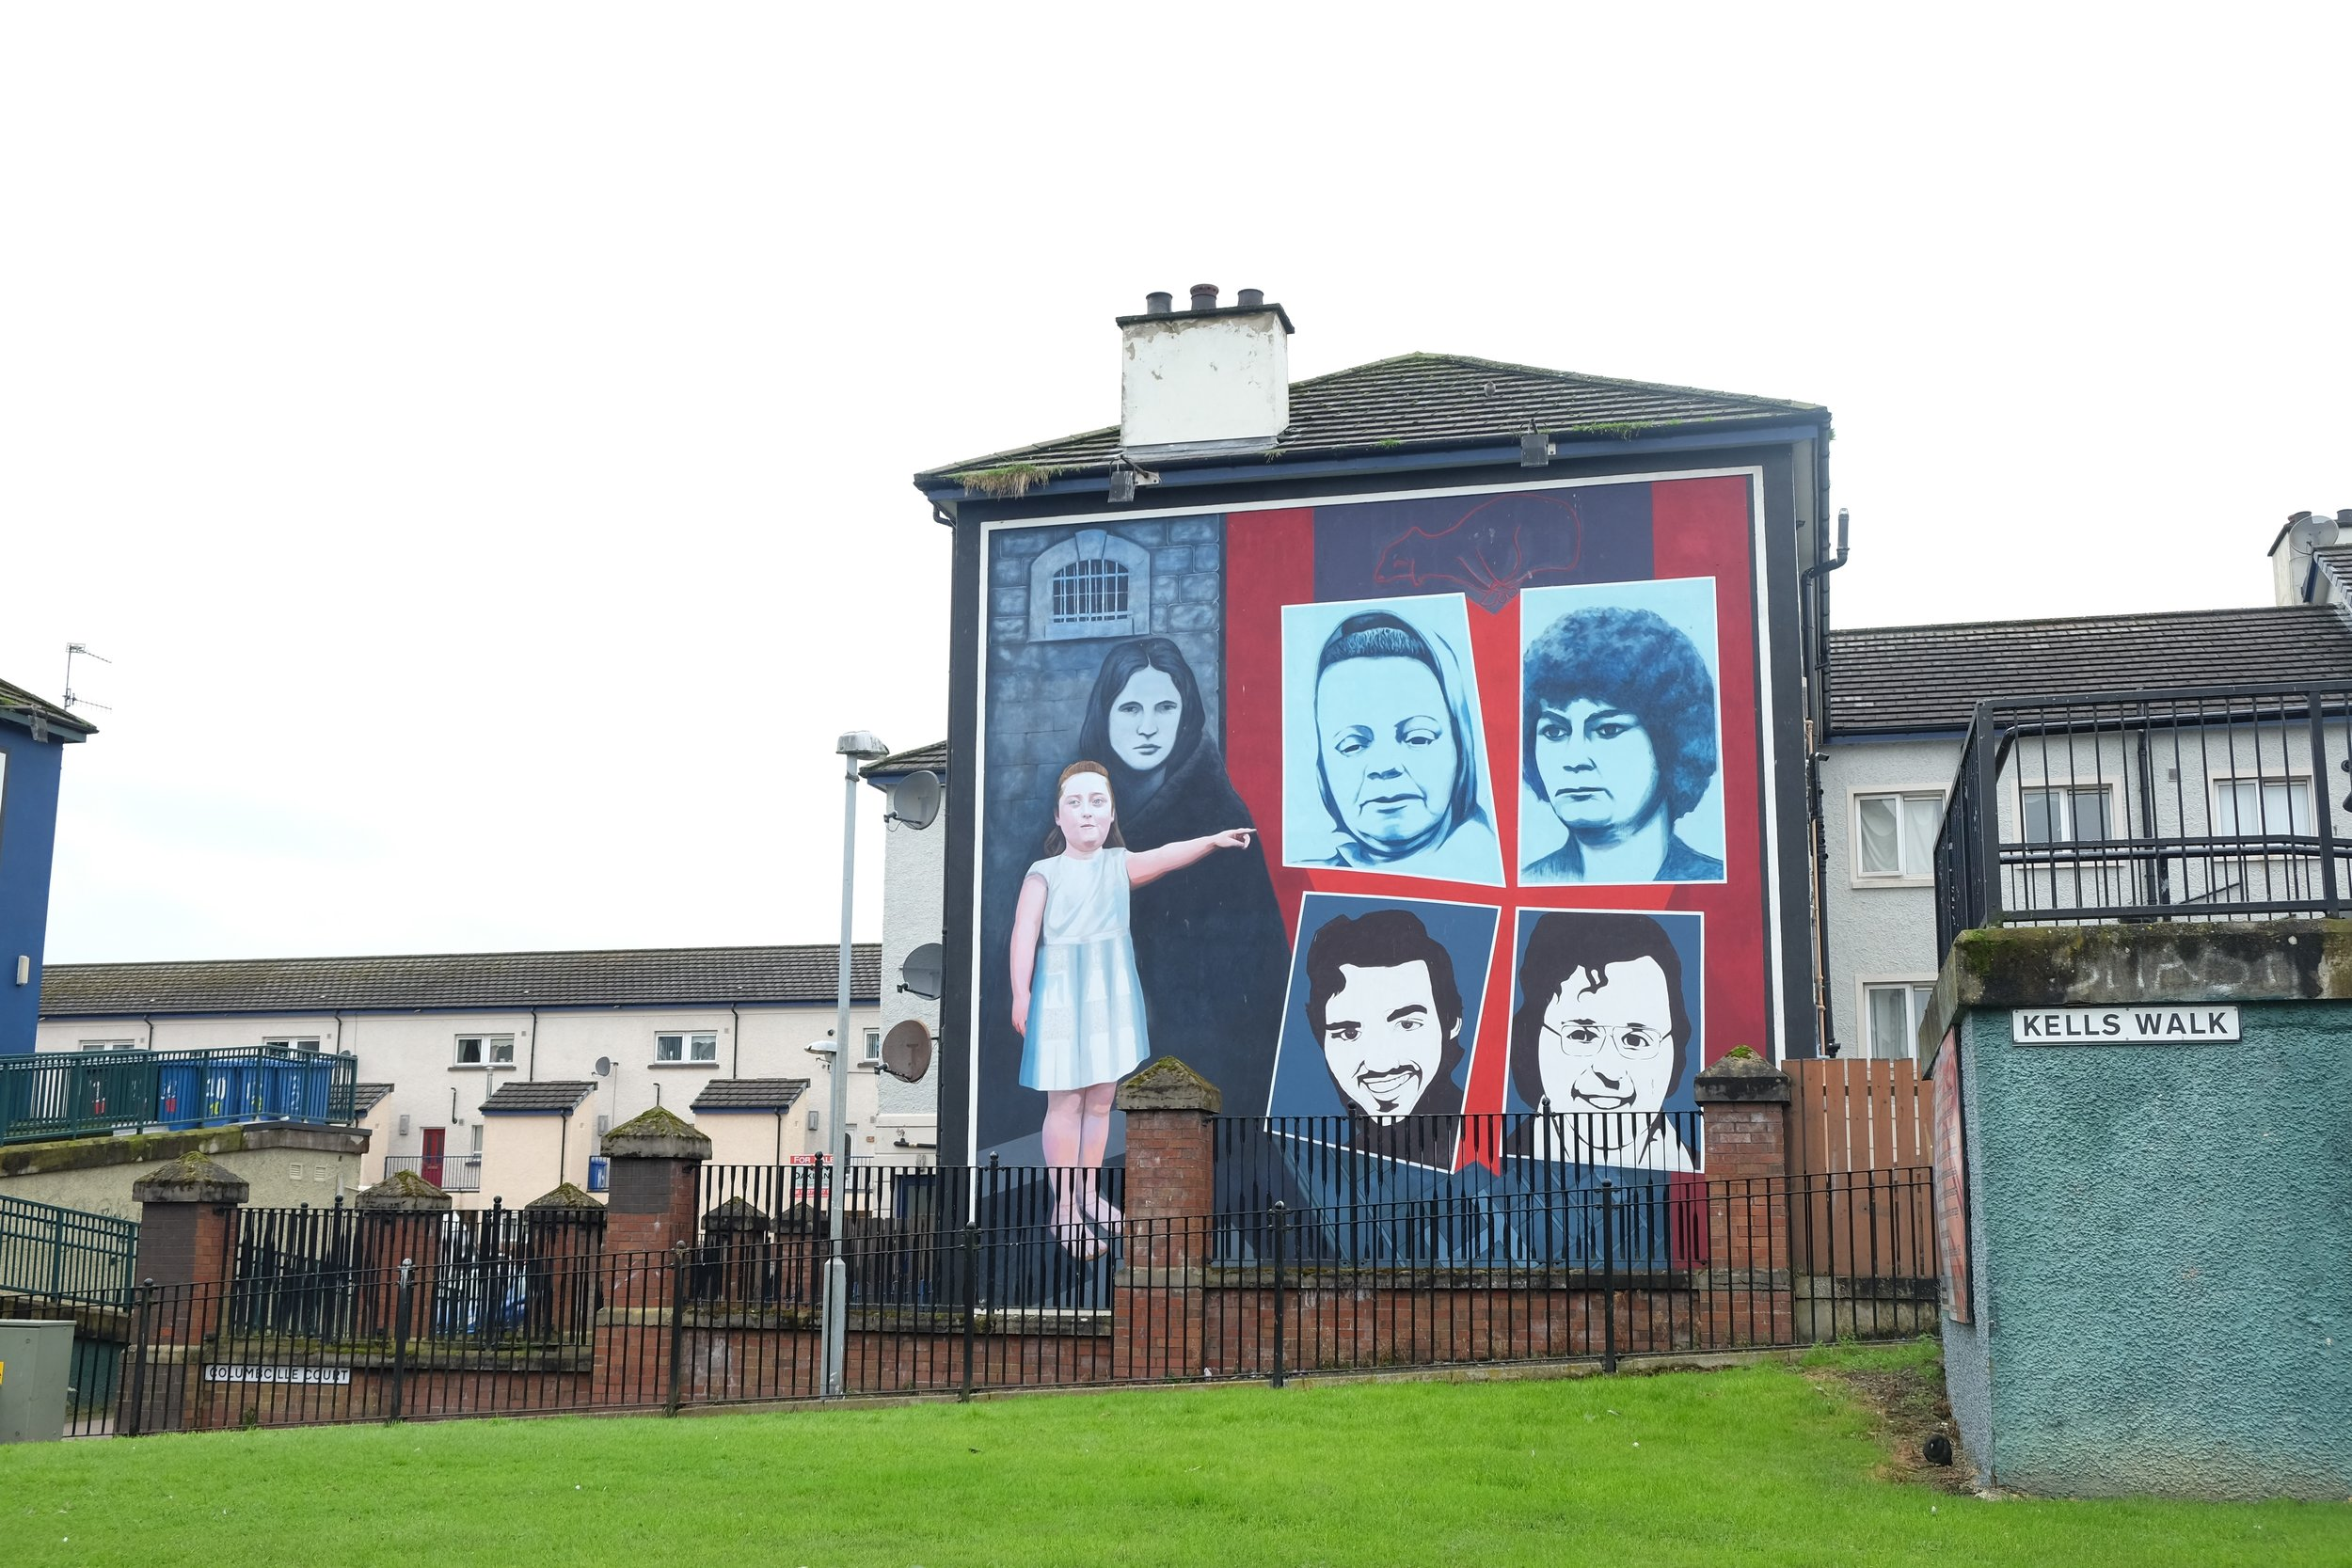 This used to be The Hunger Strike Mural, before it was vandalised and repainted over.